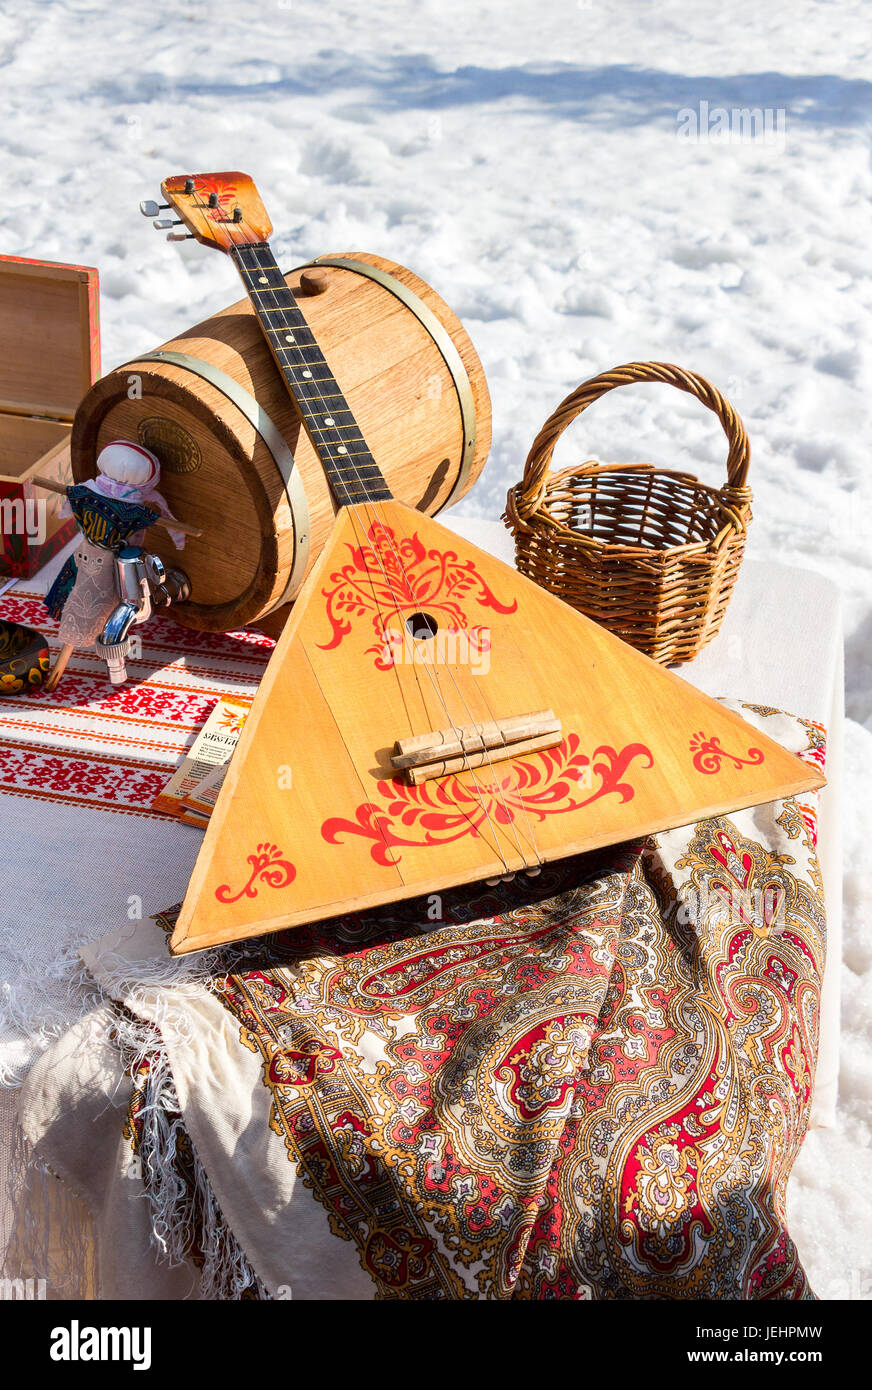 Balalaika and other products of Russian folk art over the snow background - Stock Image